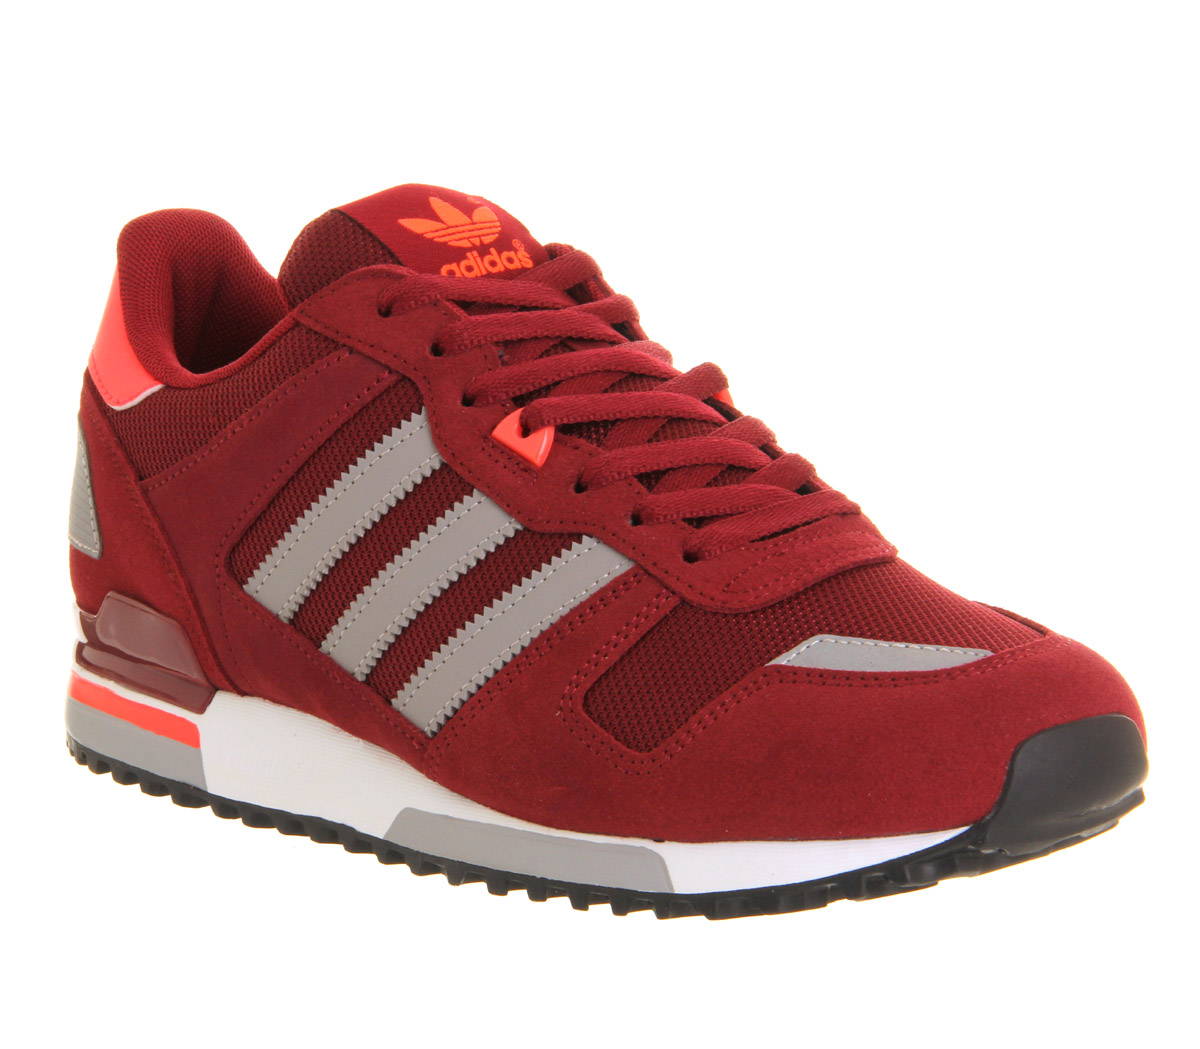 Adidas-Zx700-CARDINAL-ALLUMINUM-WHITE-EXCLUSIVE-Trainers-Shoes